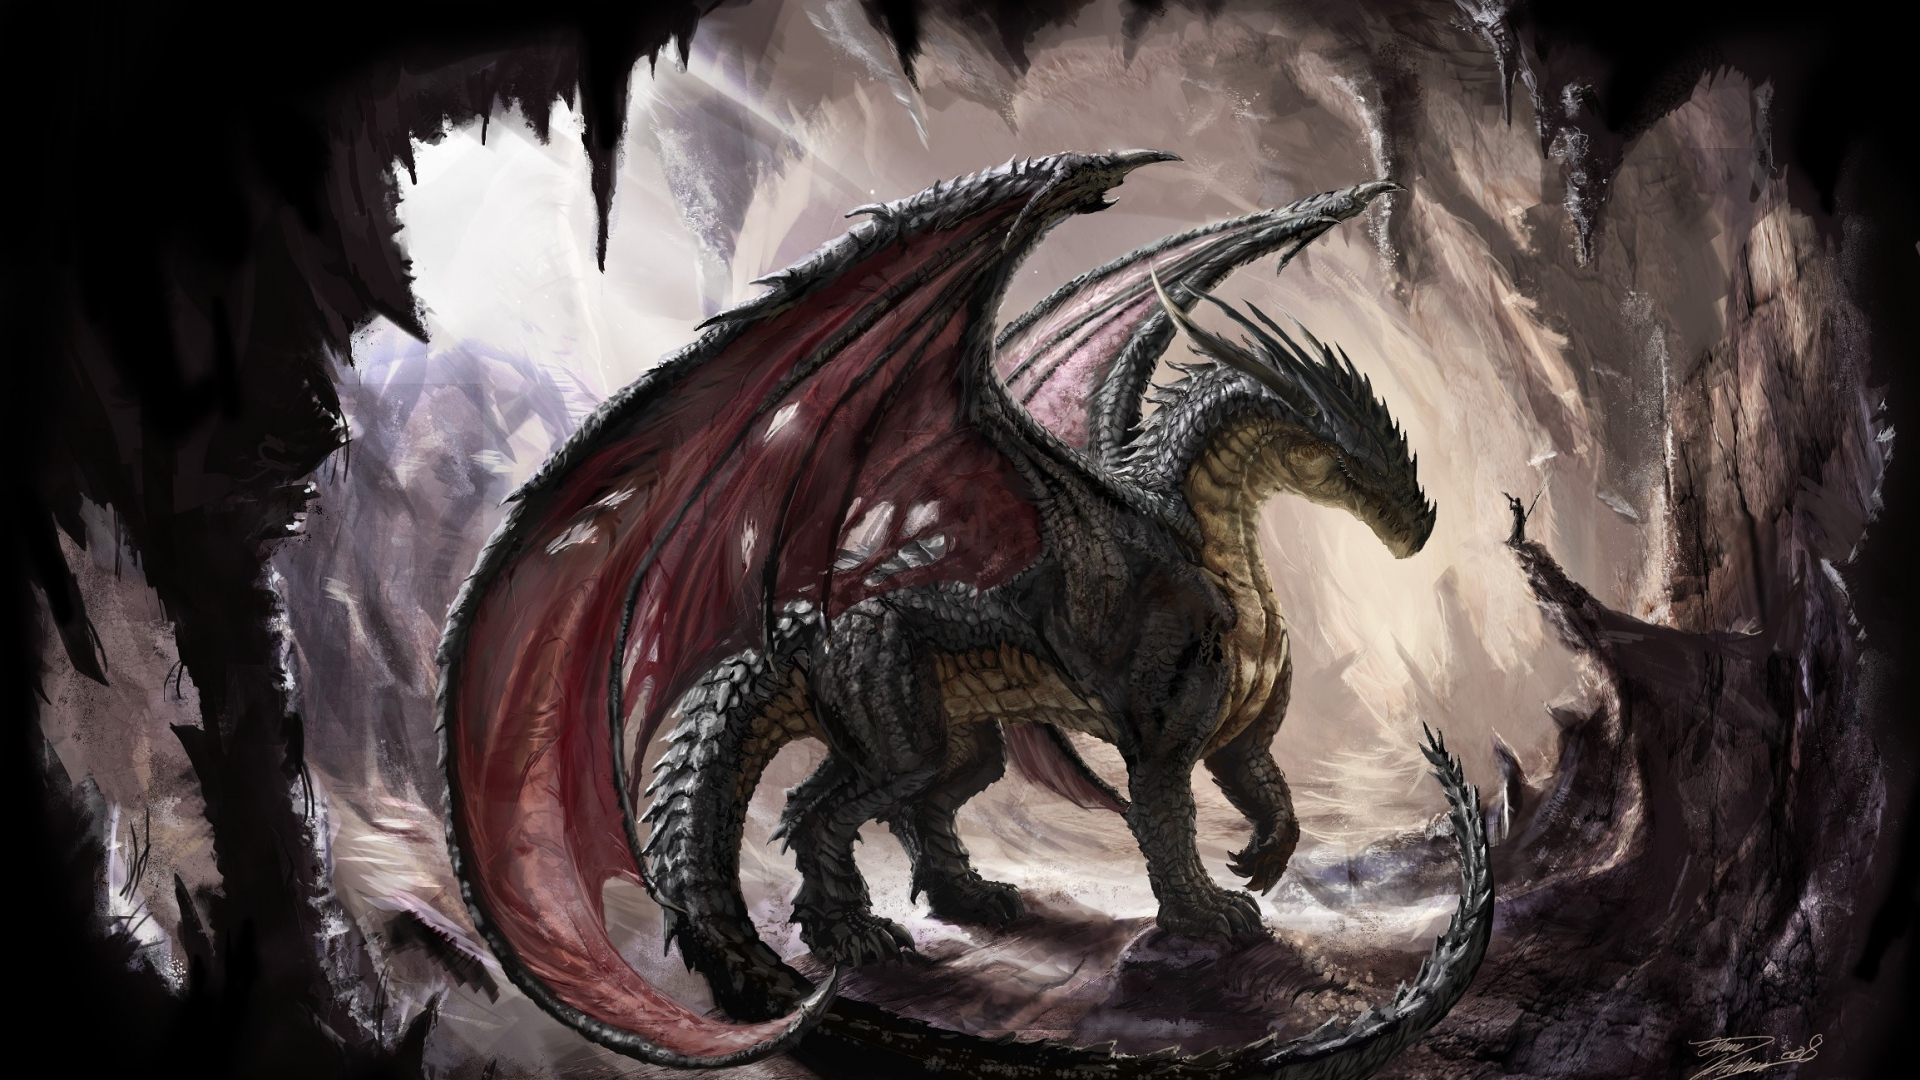 Get The Latest Dragon Cave Light News Pictures And Videos Learn All About From Wallpapers4uorg Your Wallpaper Source